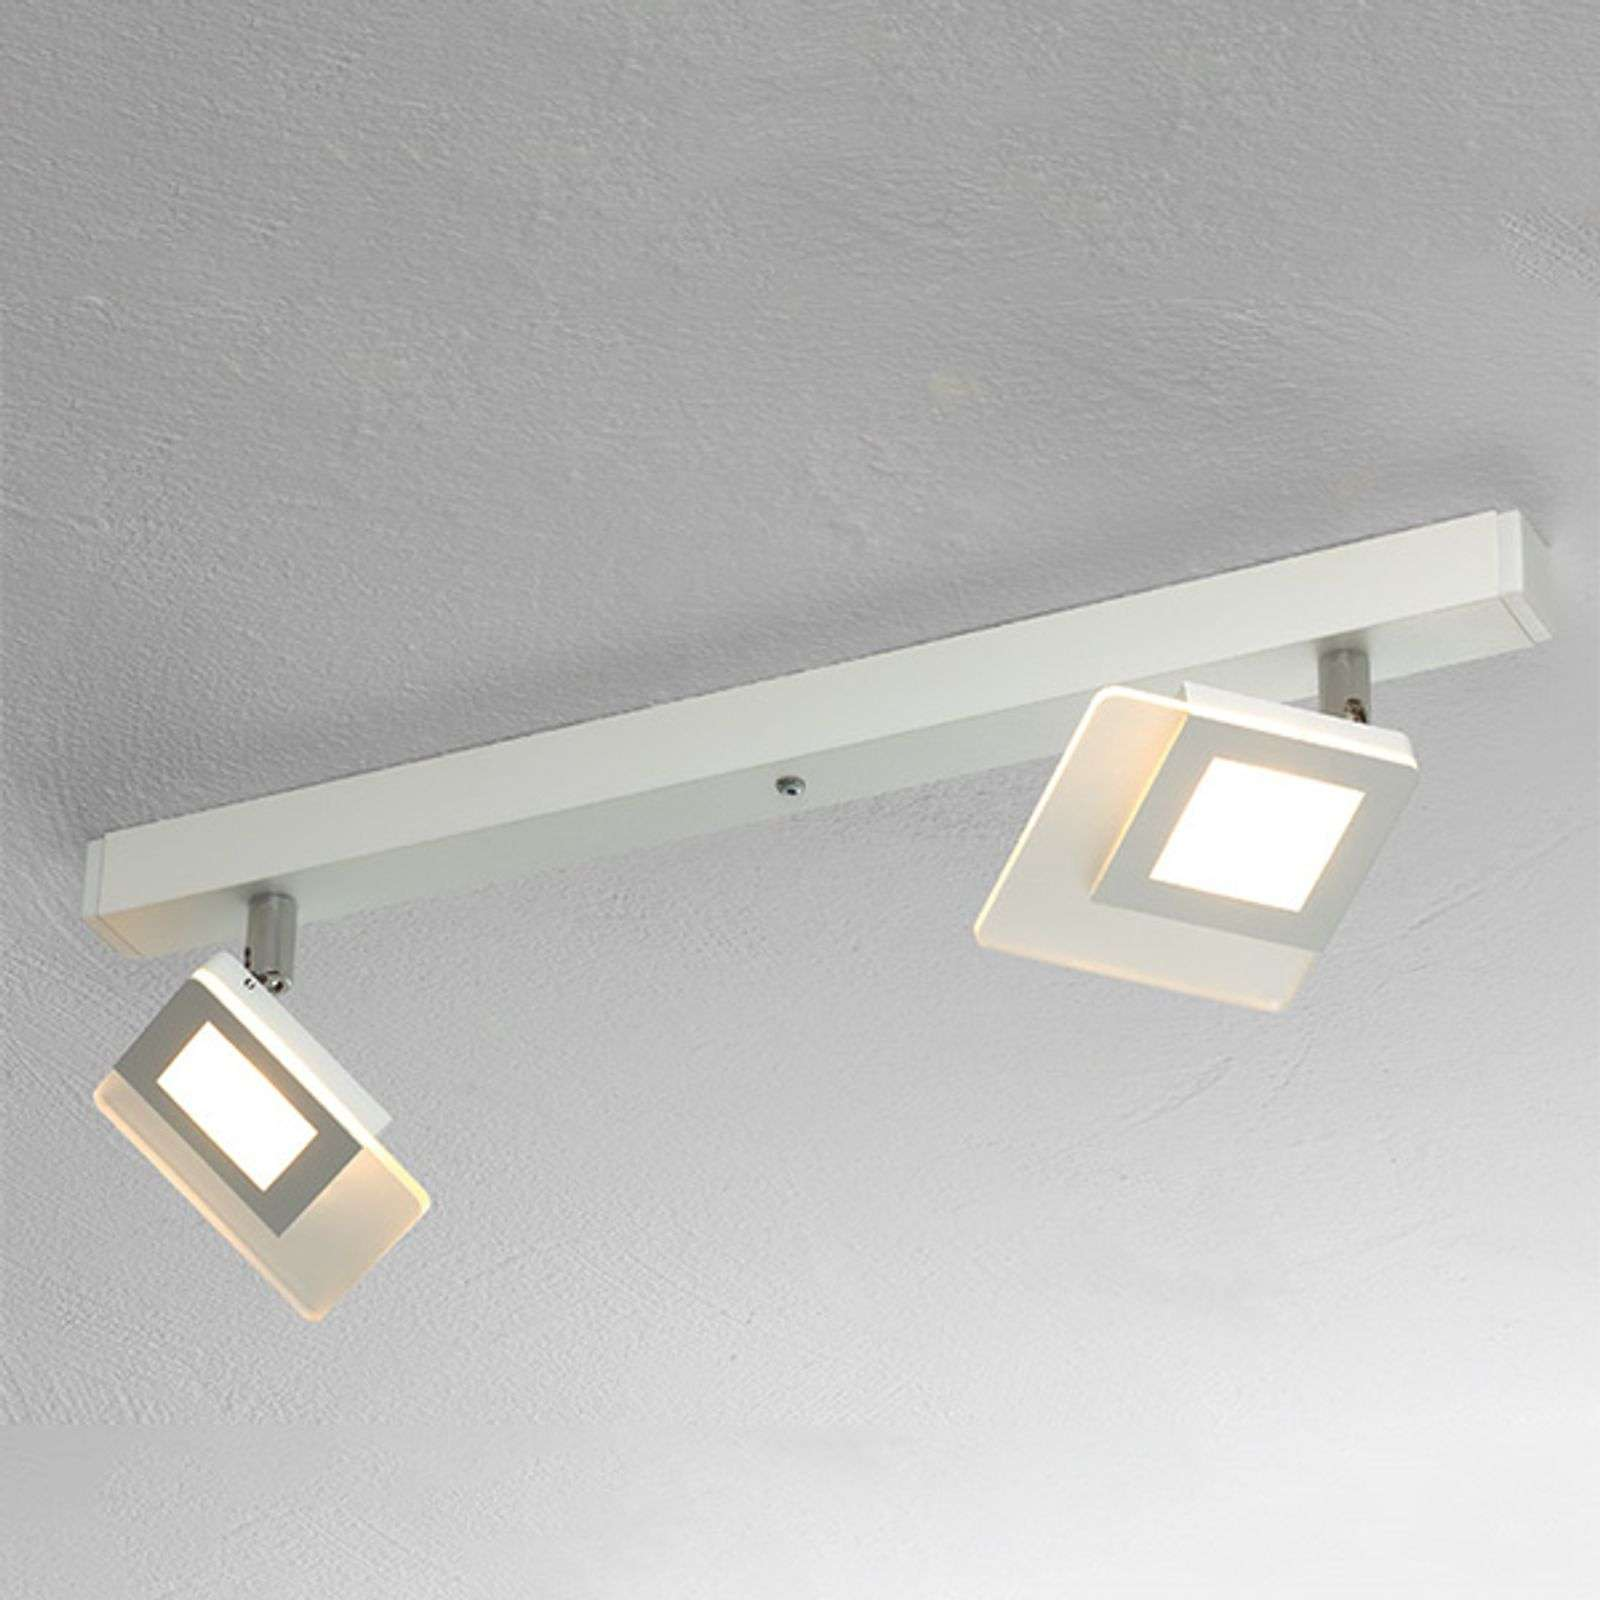 Mooie LED-plafondlamp Line in wit, 2-l.